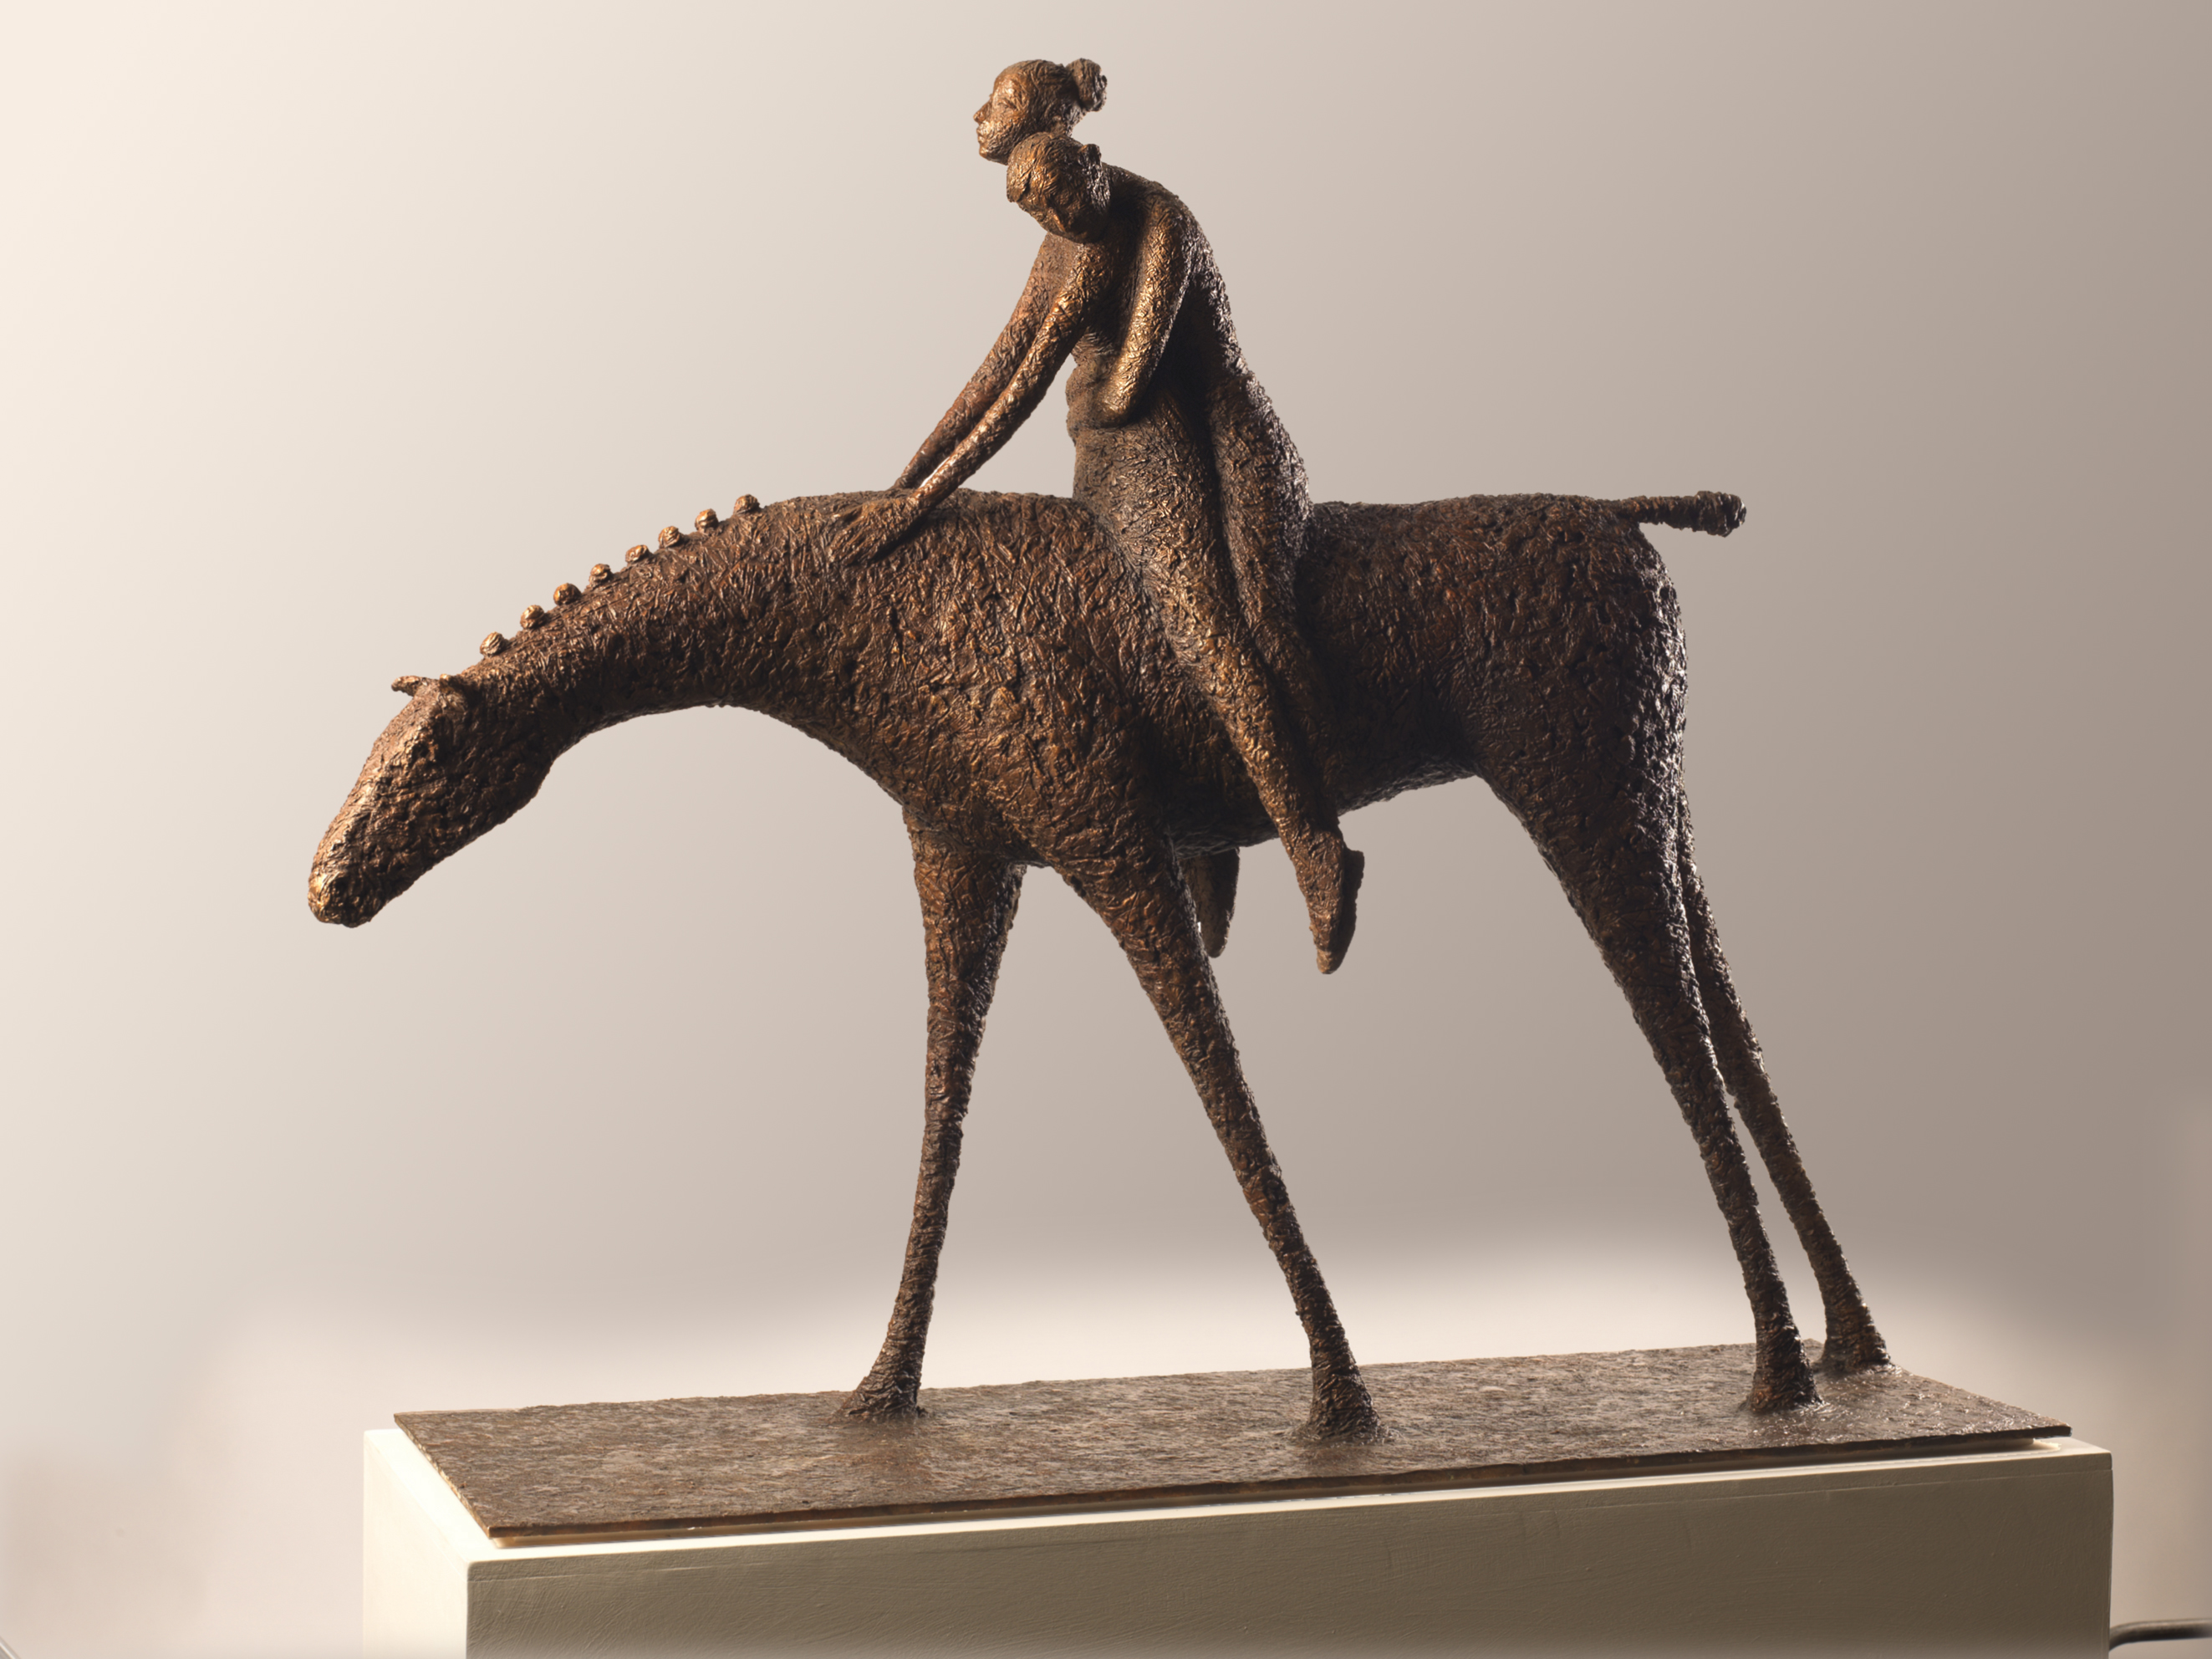 'Elopement', bronze, edt 2 of 9, 96cm x 124cm x 38cm